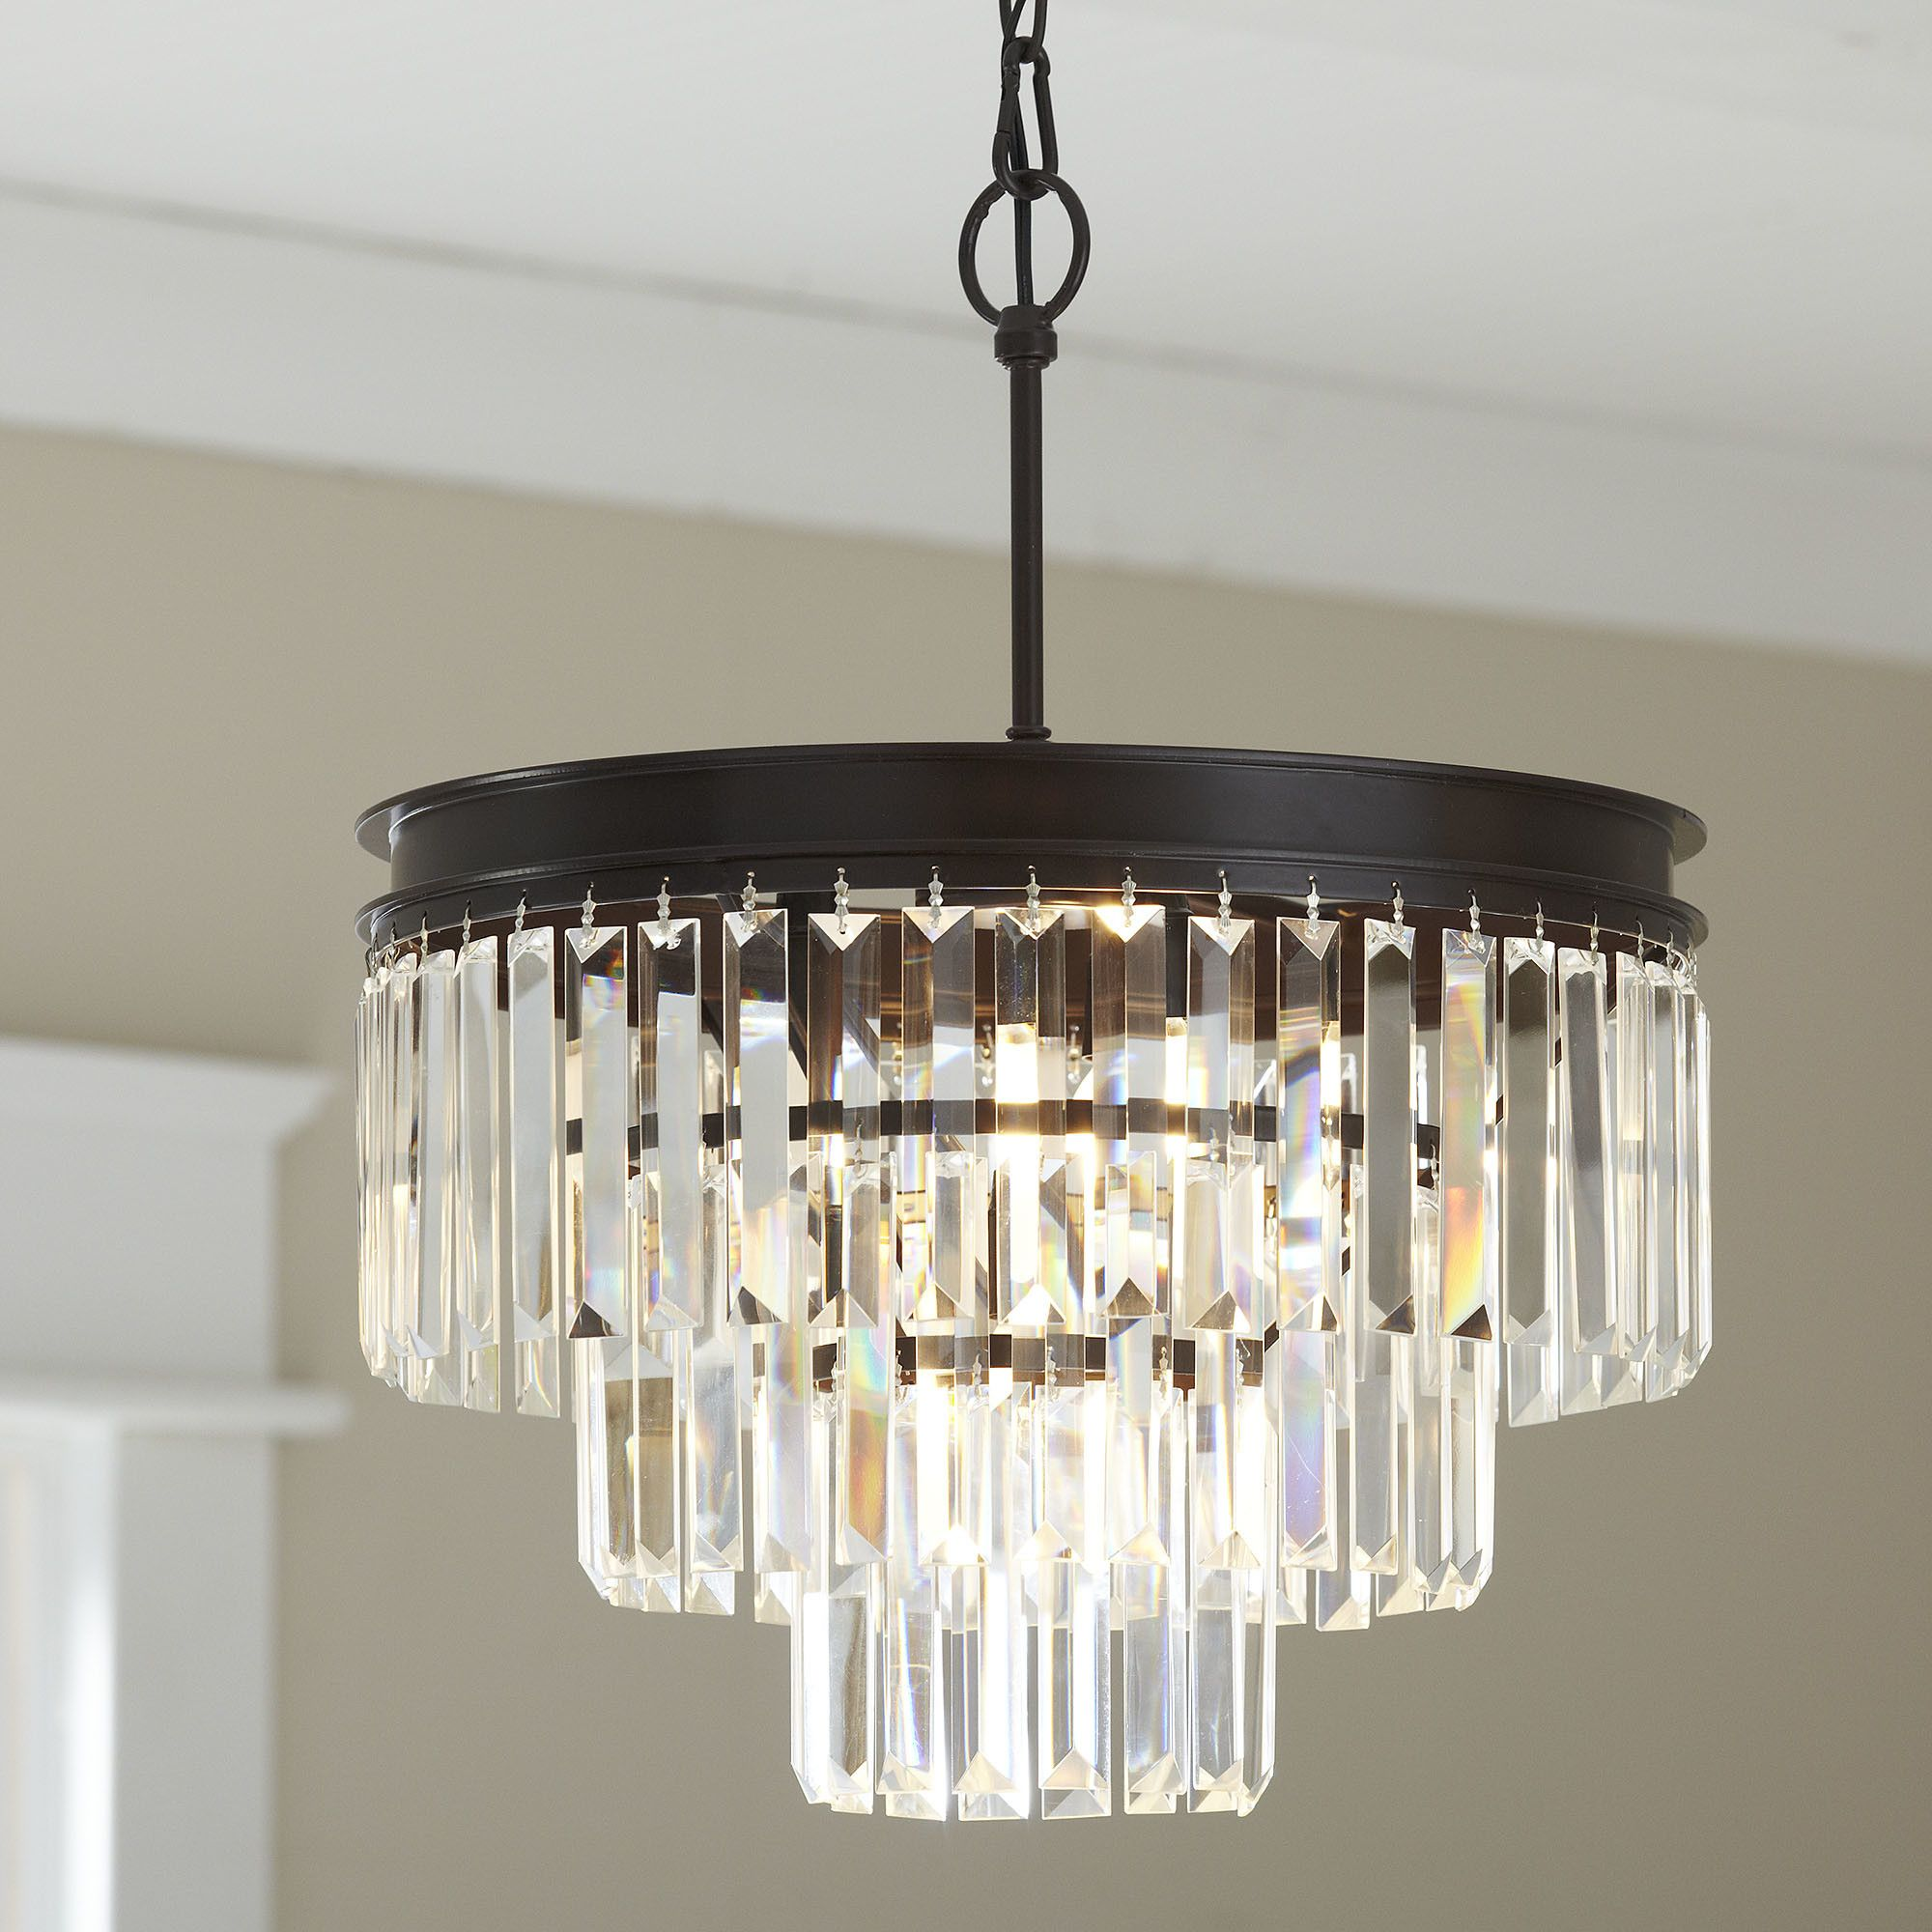 Lorna crystal chandelier cooper city casa pinterest birch lane lorna crystal chandelier arubaitofo Image collections